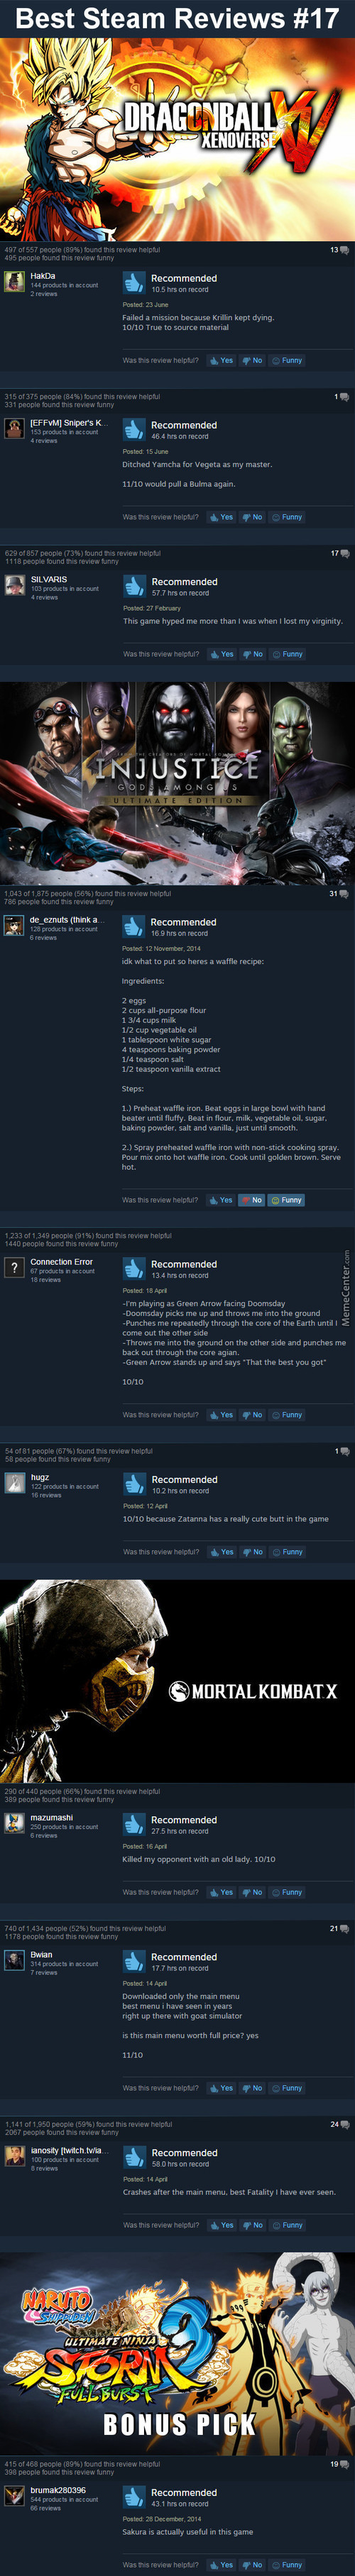 "Best Steam Reviews #17 - The ""vydia Causes Violence"" Edition"